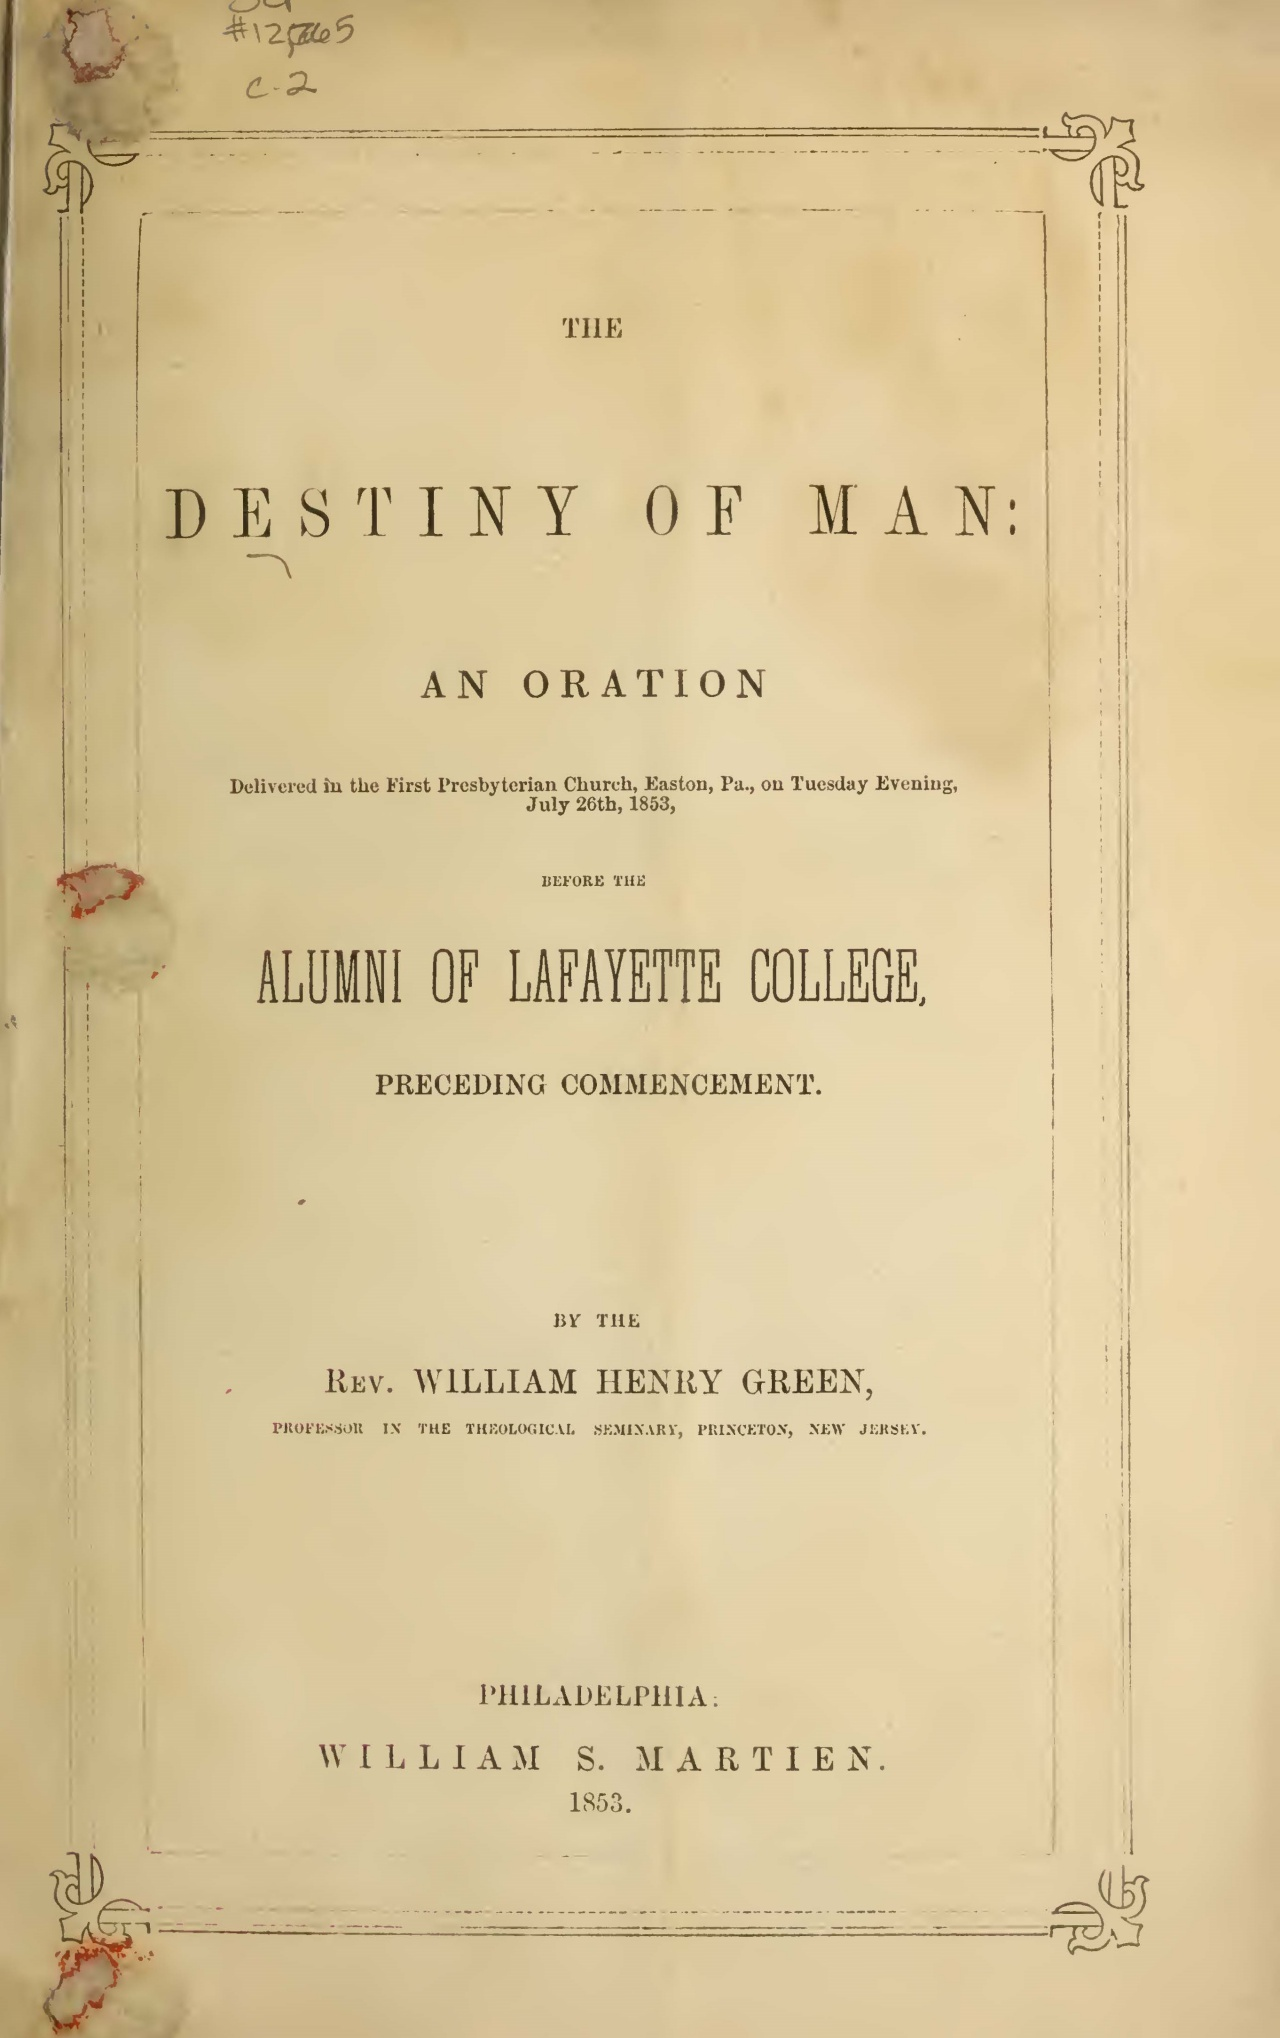 Green, William Henry, The Destiny of Man Title Page.jpg